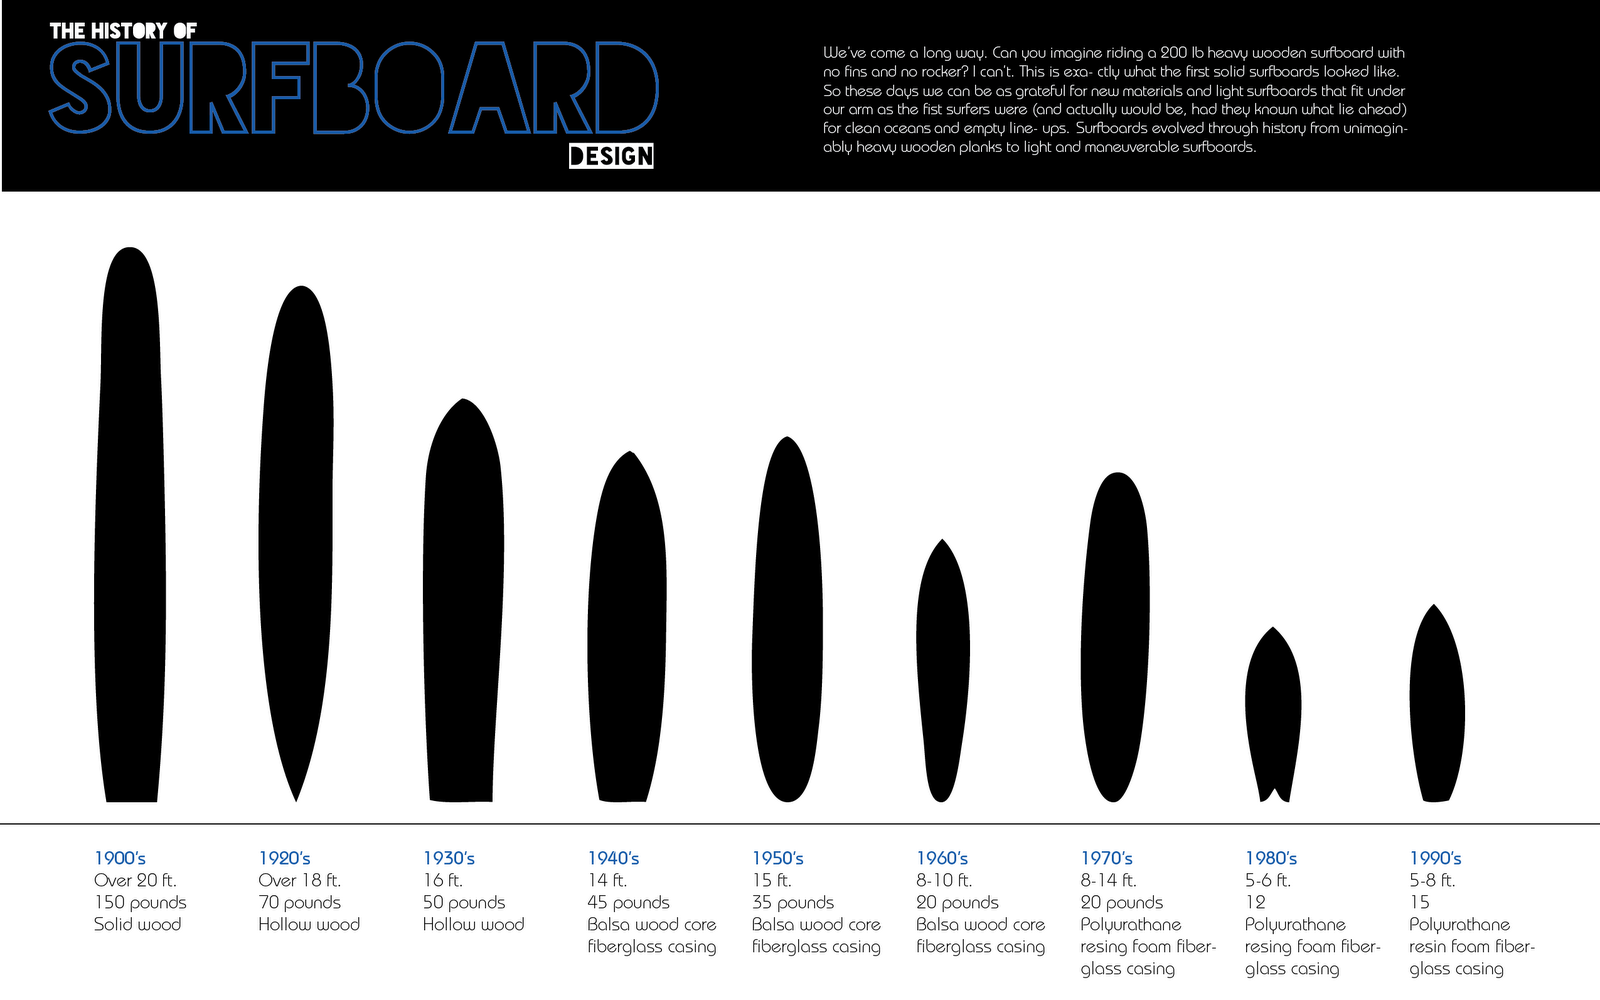 An artistic impression showing the evolving surfboard fin design